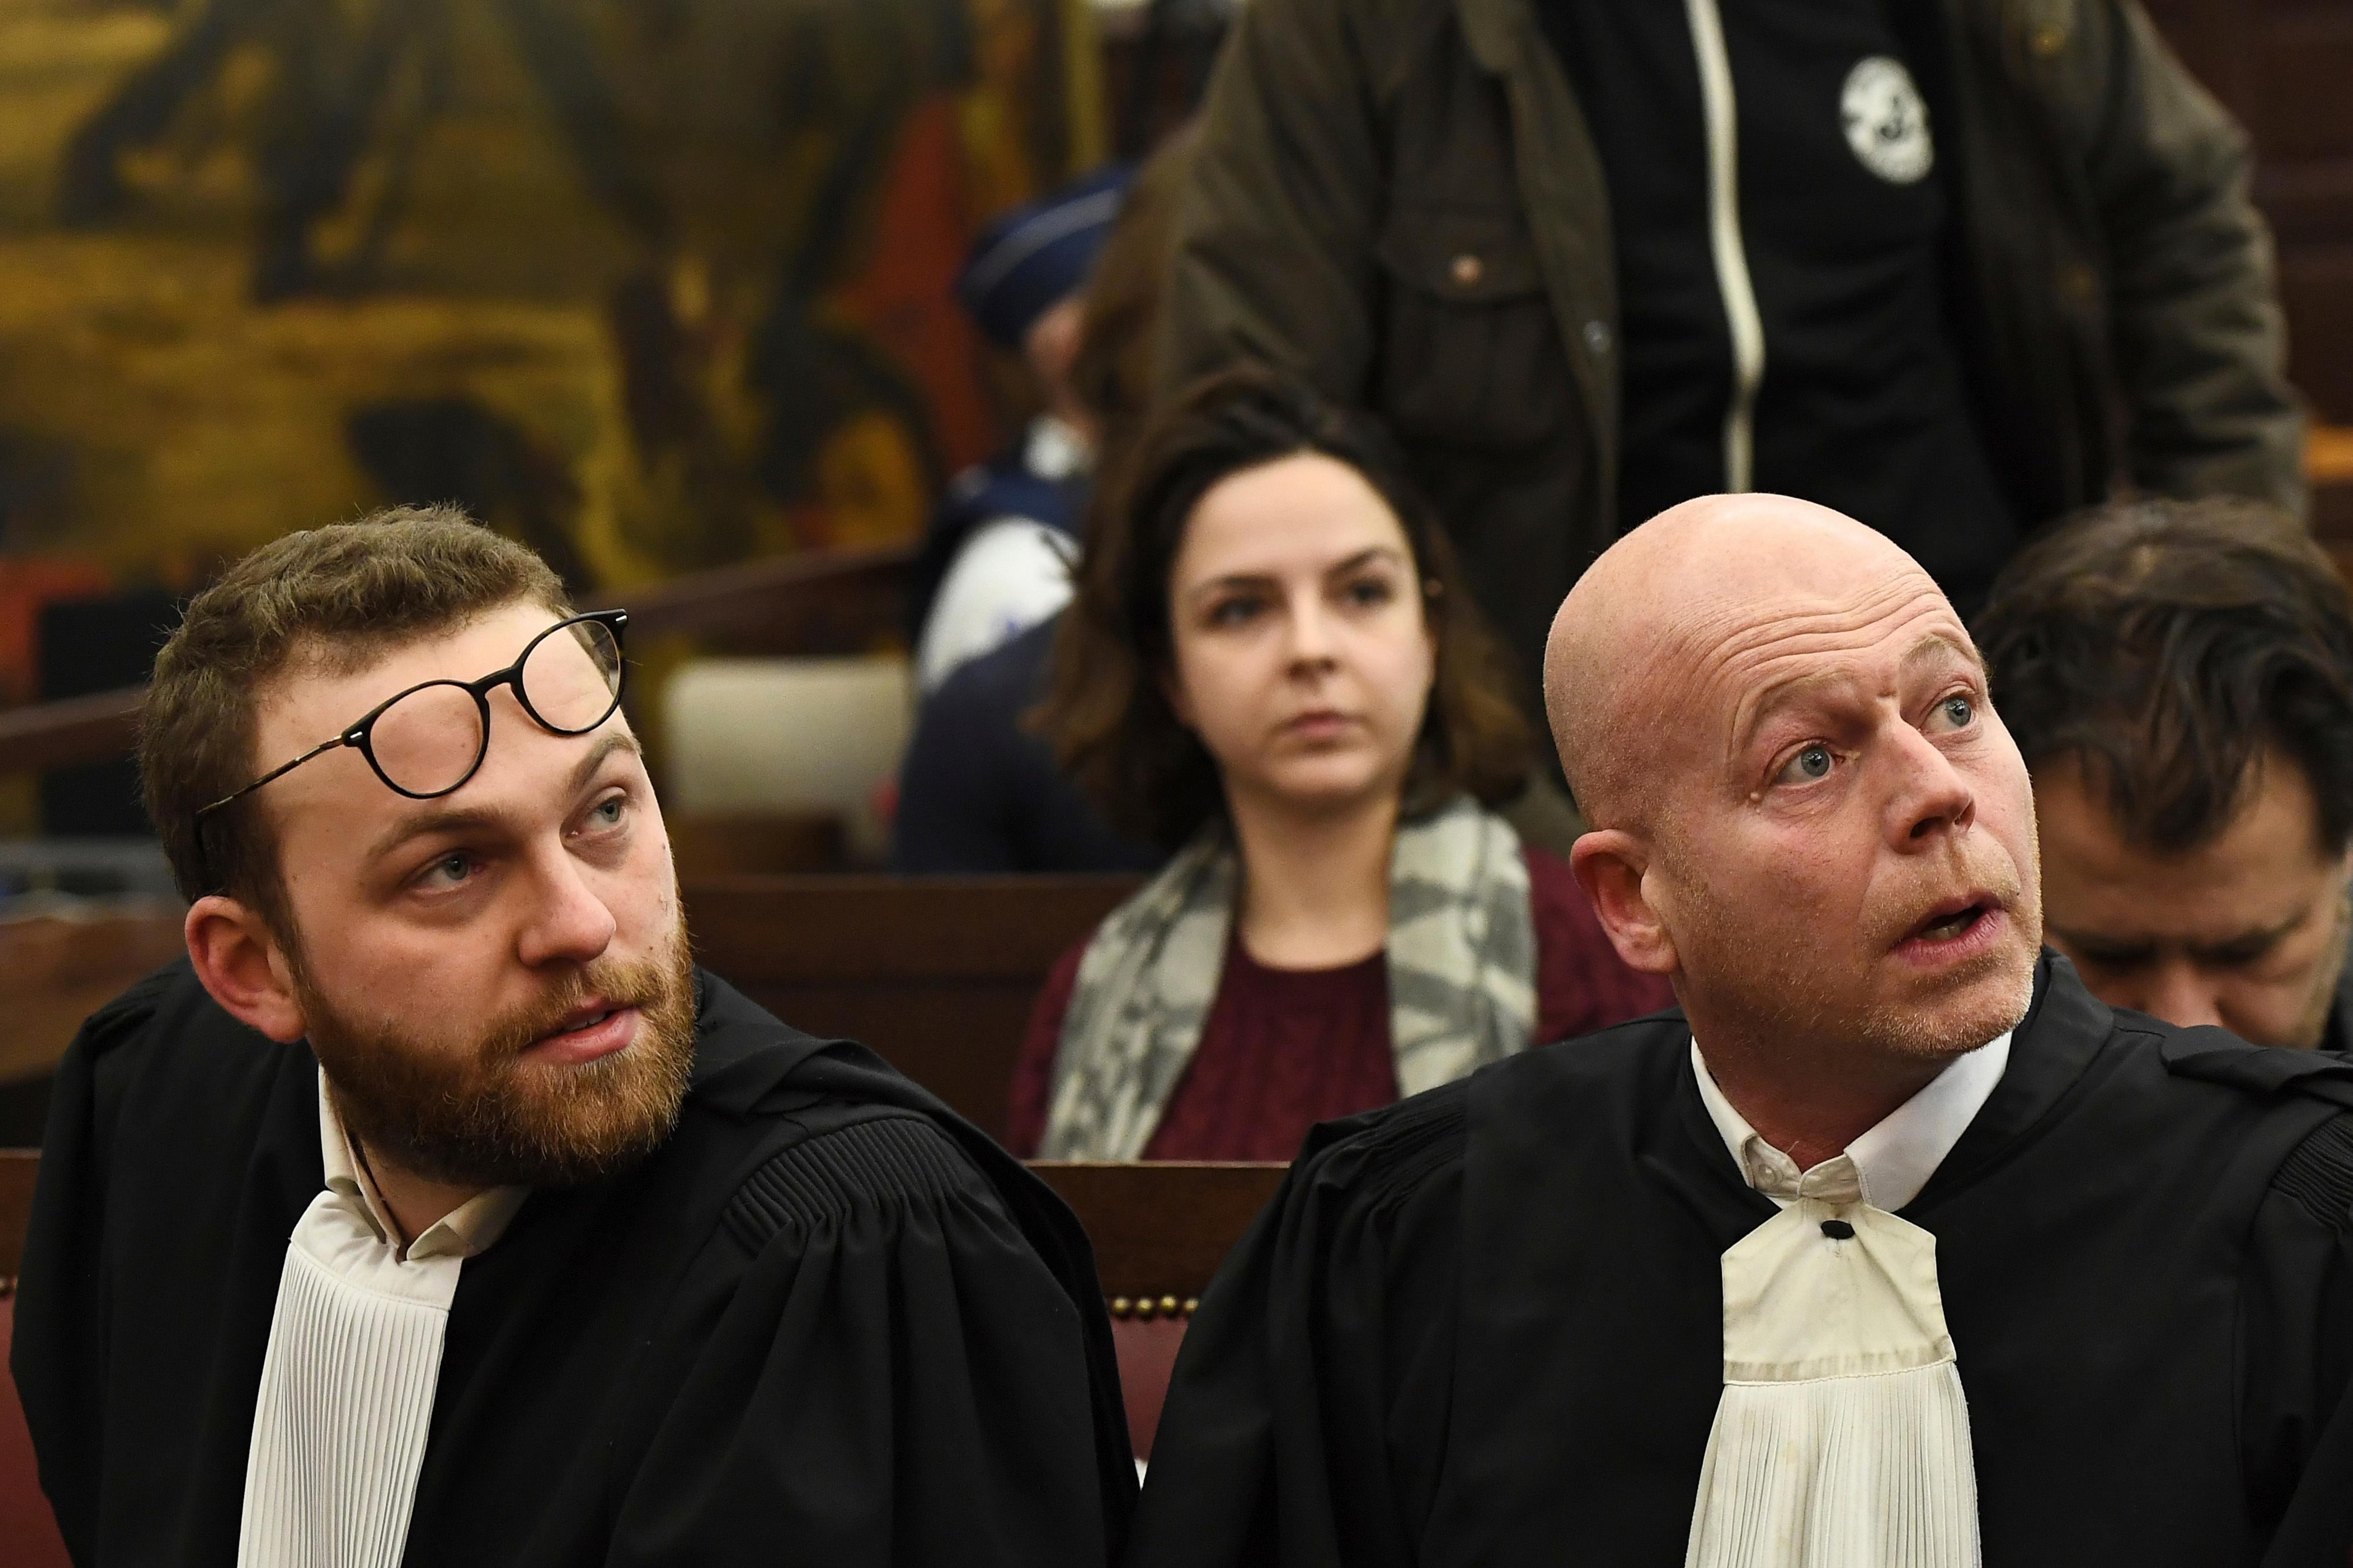 Belgian lawyer Sven Mary, right, and lawyer Romain Delcoigne, left, attend the trial of Salah Abdeslam at the Brussels Justice Palace in Brussels on Monday, Feb. 5, 2018. Salah Abdeslam and Soufiane Ayari face trial for taking part in a shooting incident in Vorst, Belgium on March 15, 2016. The incident took place when six members of a Franco-Belgian research team investigating the attacks in Paris were conducting a search in an allegedly empty safe house of the terrorists and were attacked. (Emmanuel Dunand, Pool Photo via AP)